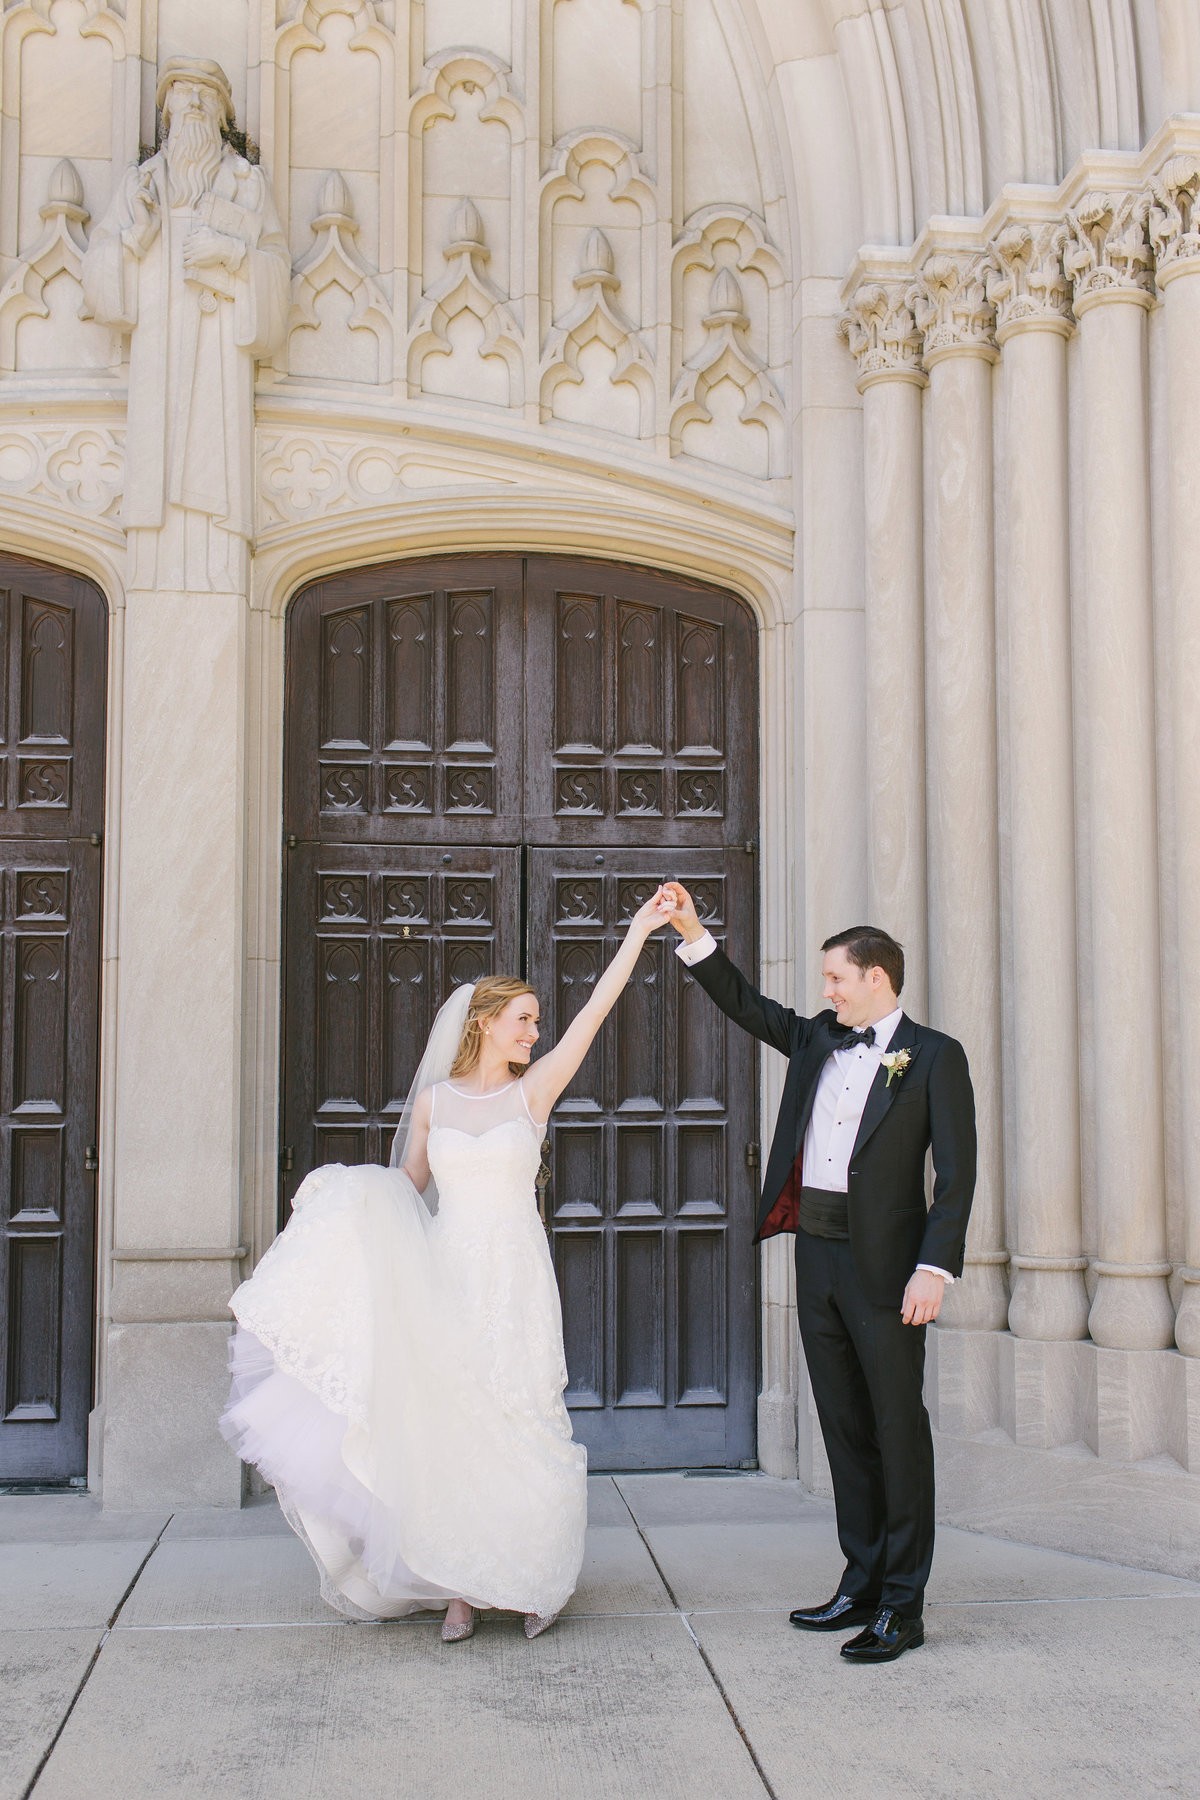 Scottish Rite Cathedral Wedding Lace Wedding Dancing Photo